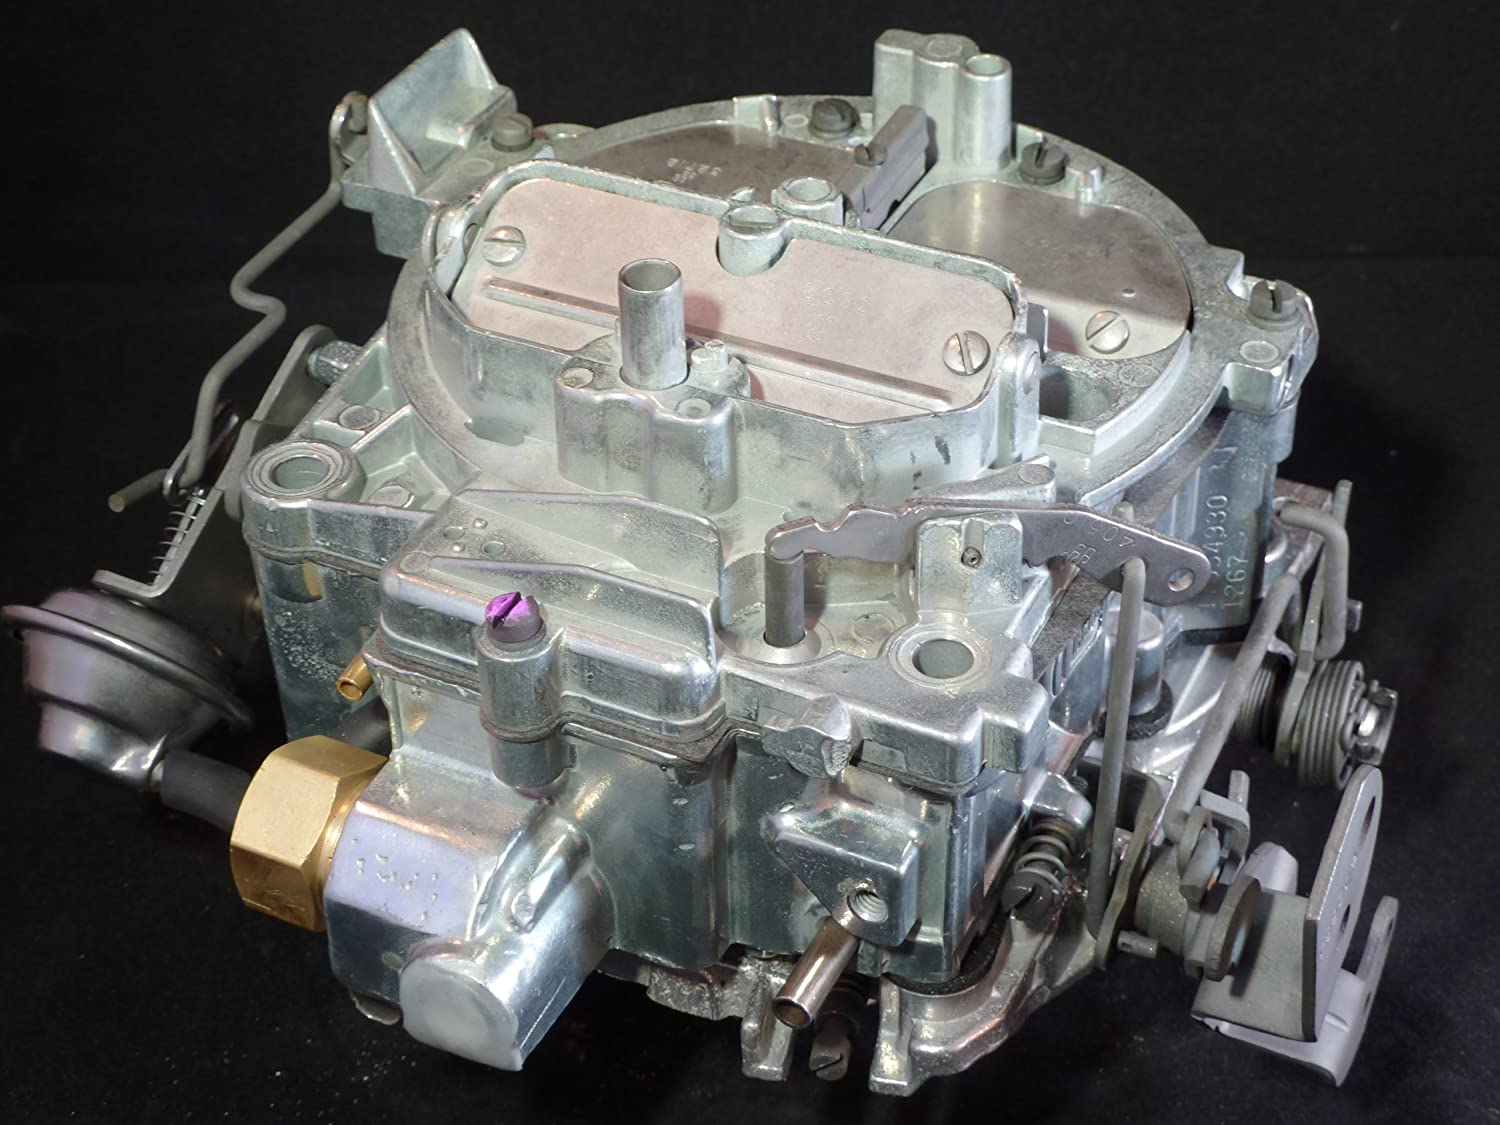 Holley 0 76750bk carburetor double what is forward voltage pvc rochester carburetor marine ebay mercedes benz ac wiring diagrams 91jdmpugw9l rochester carburetor marine ebayhtml holley 0 76750bk carburetor double pooptronica Image collections